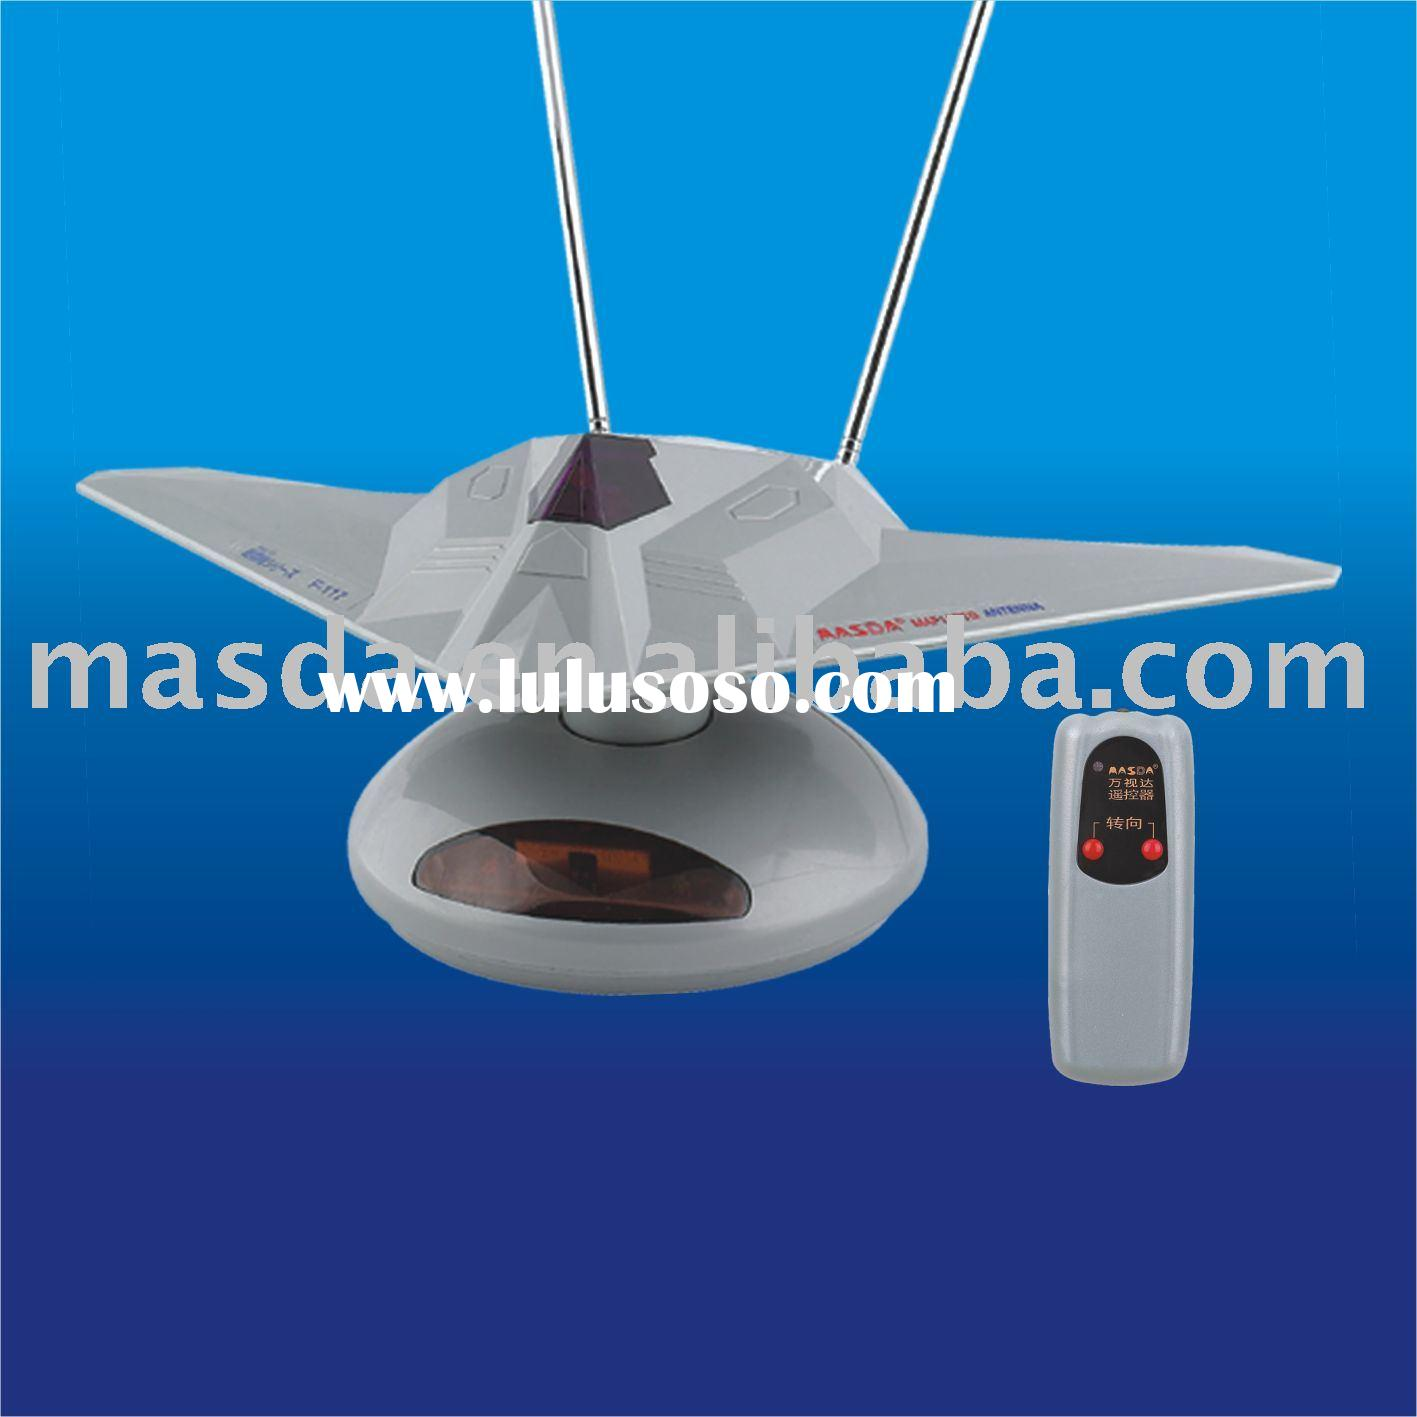 Indoor remote-controlled rotating antenna MA-F117